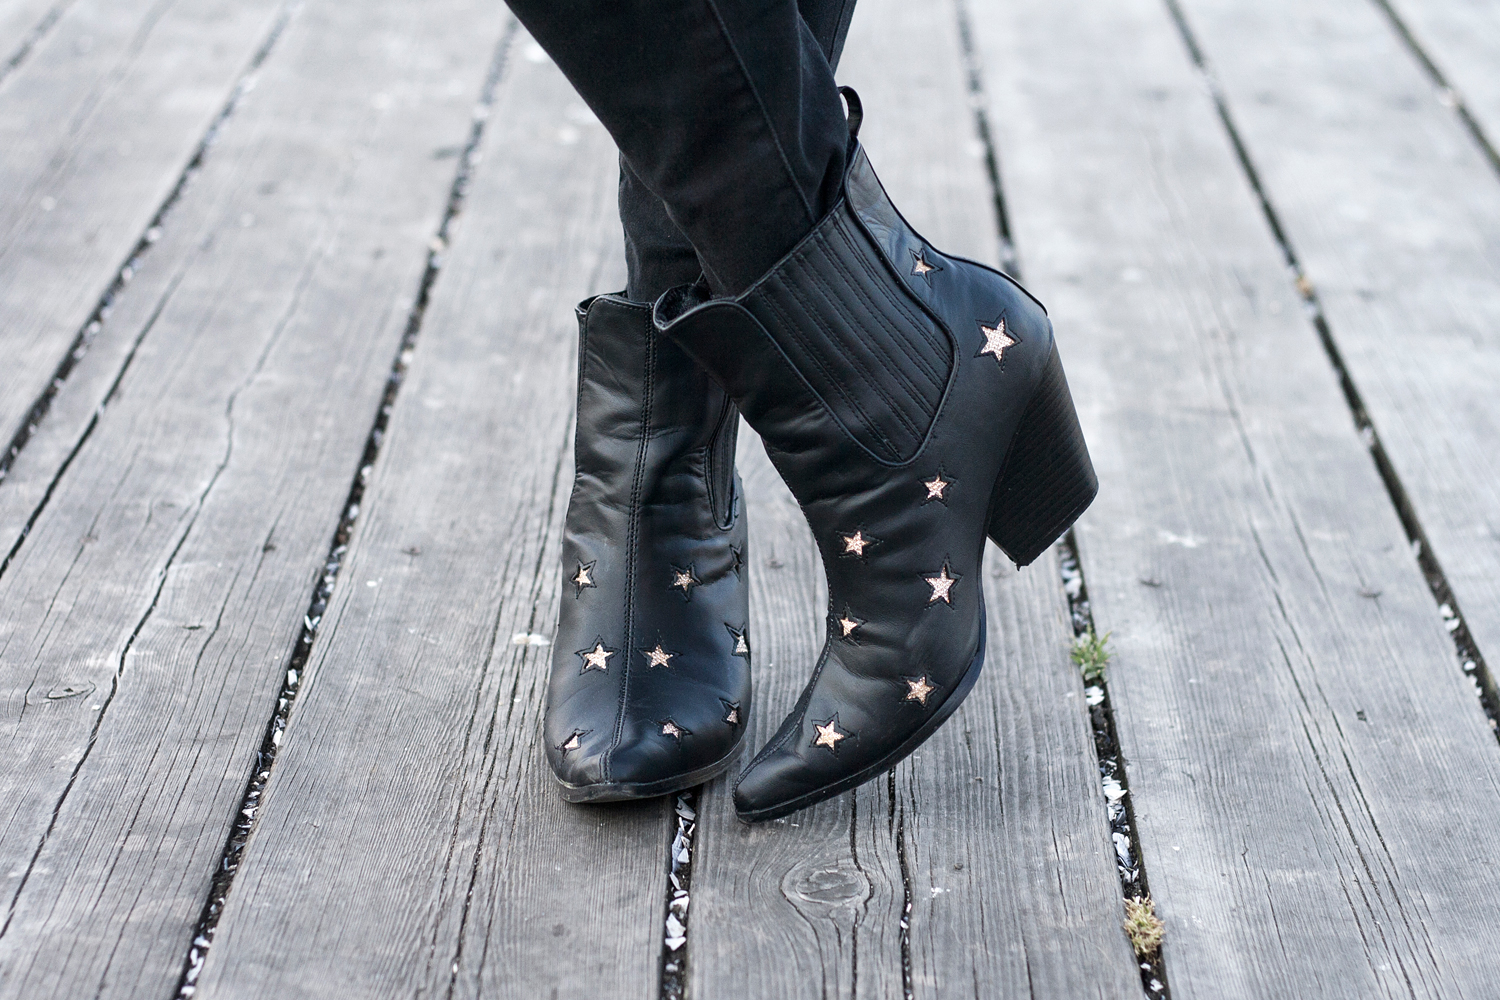 07stars-boots-booties-shoes-fashion-style